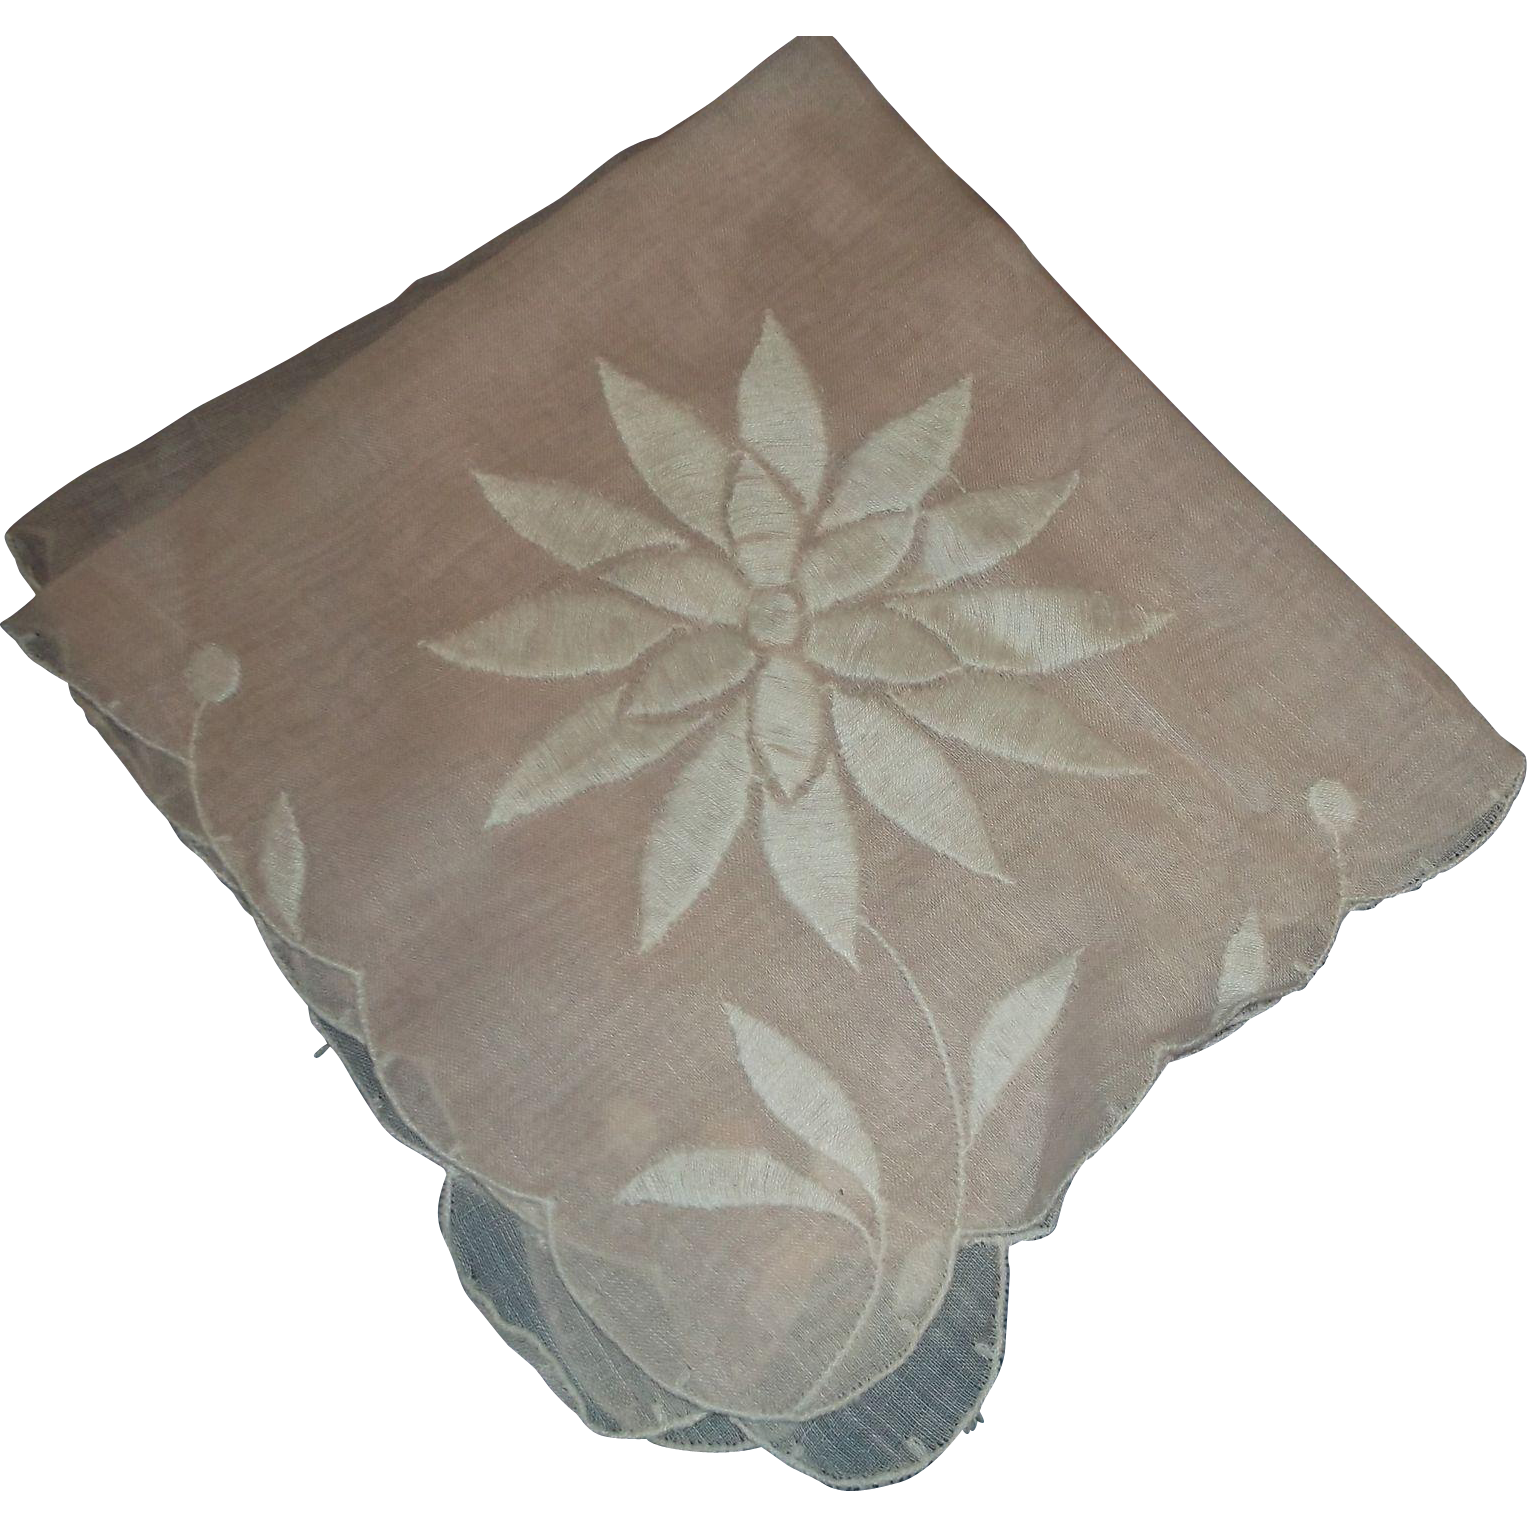 Pink Cotton Handkerchief Ladies White Flower Embroidery